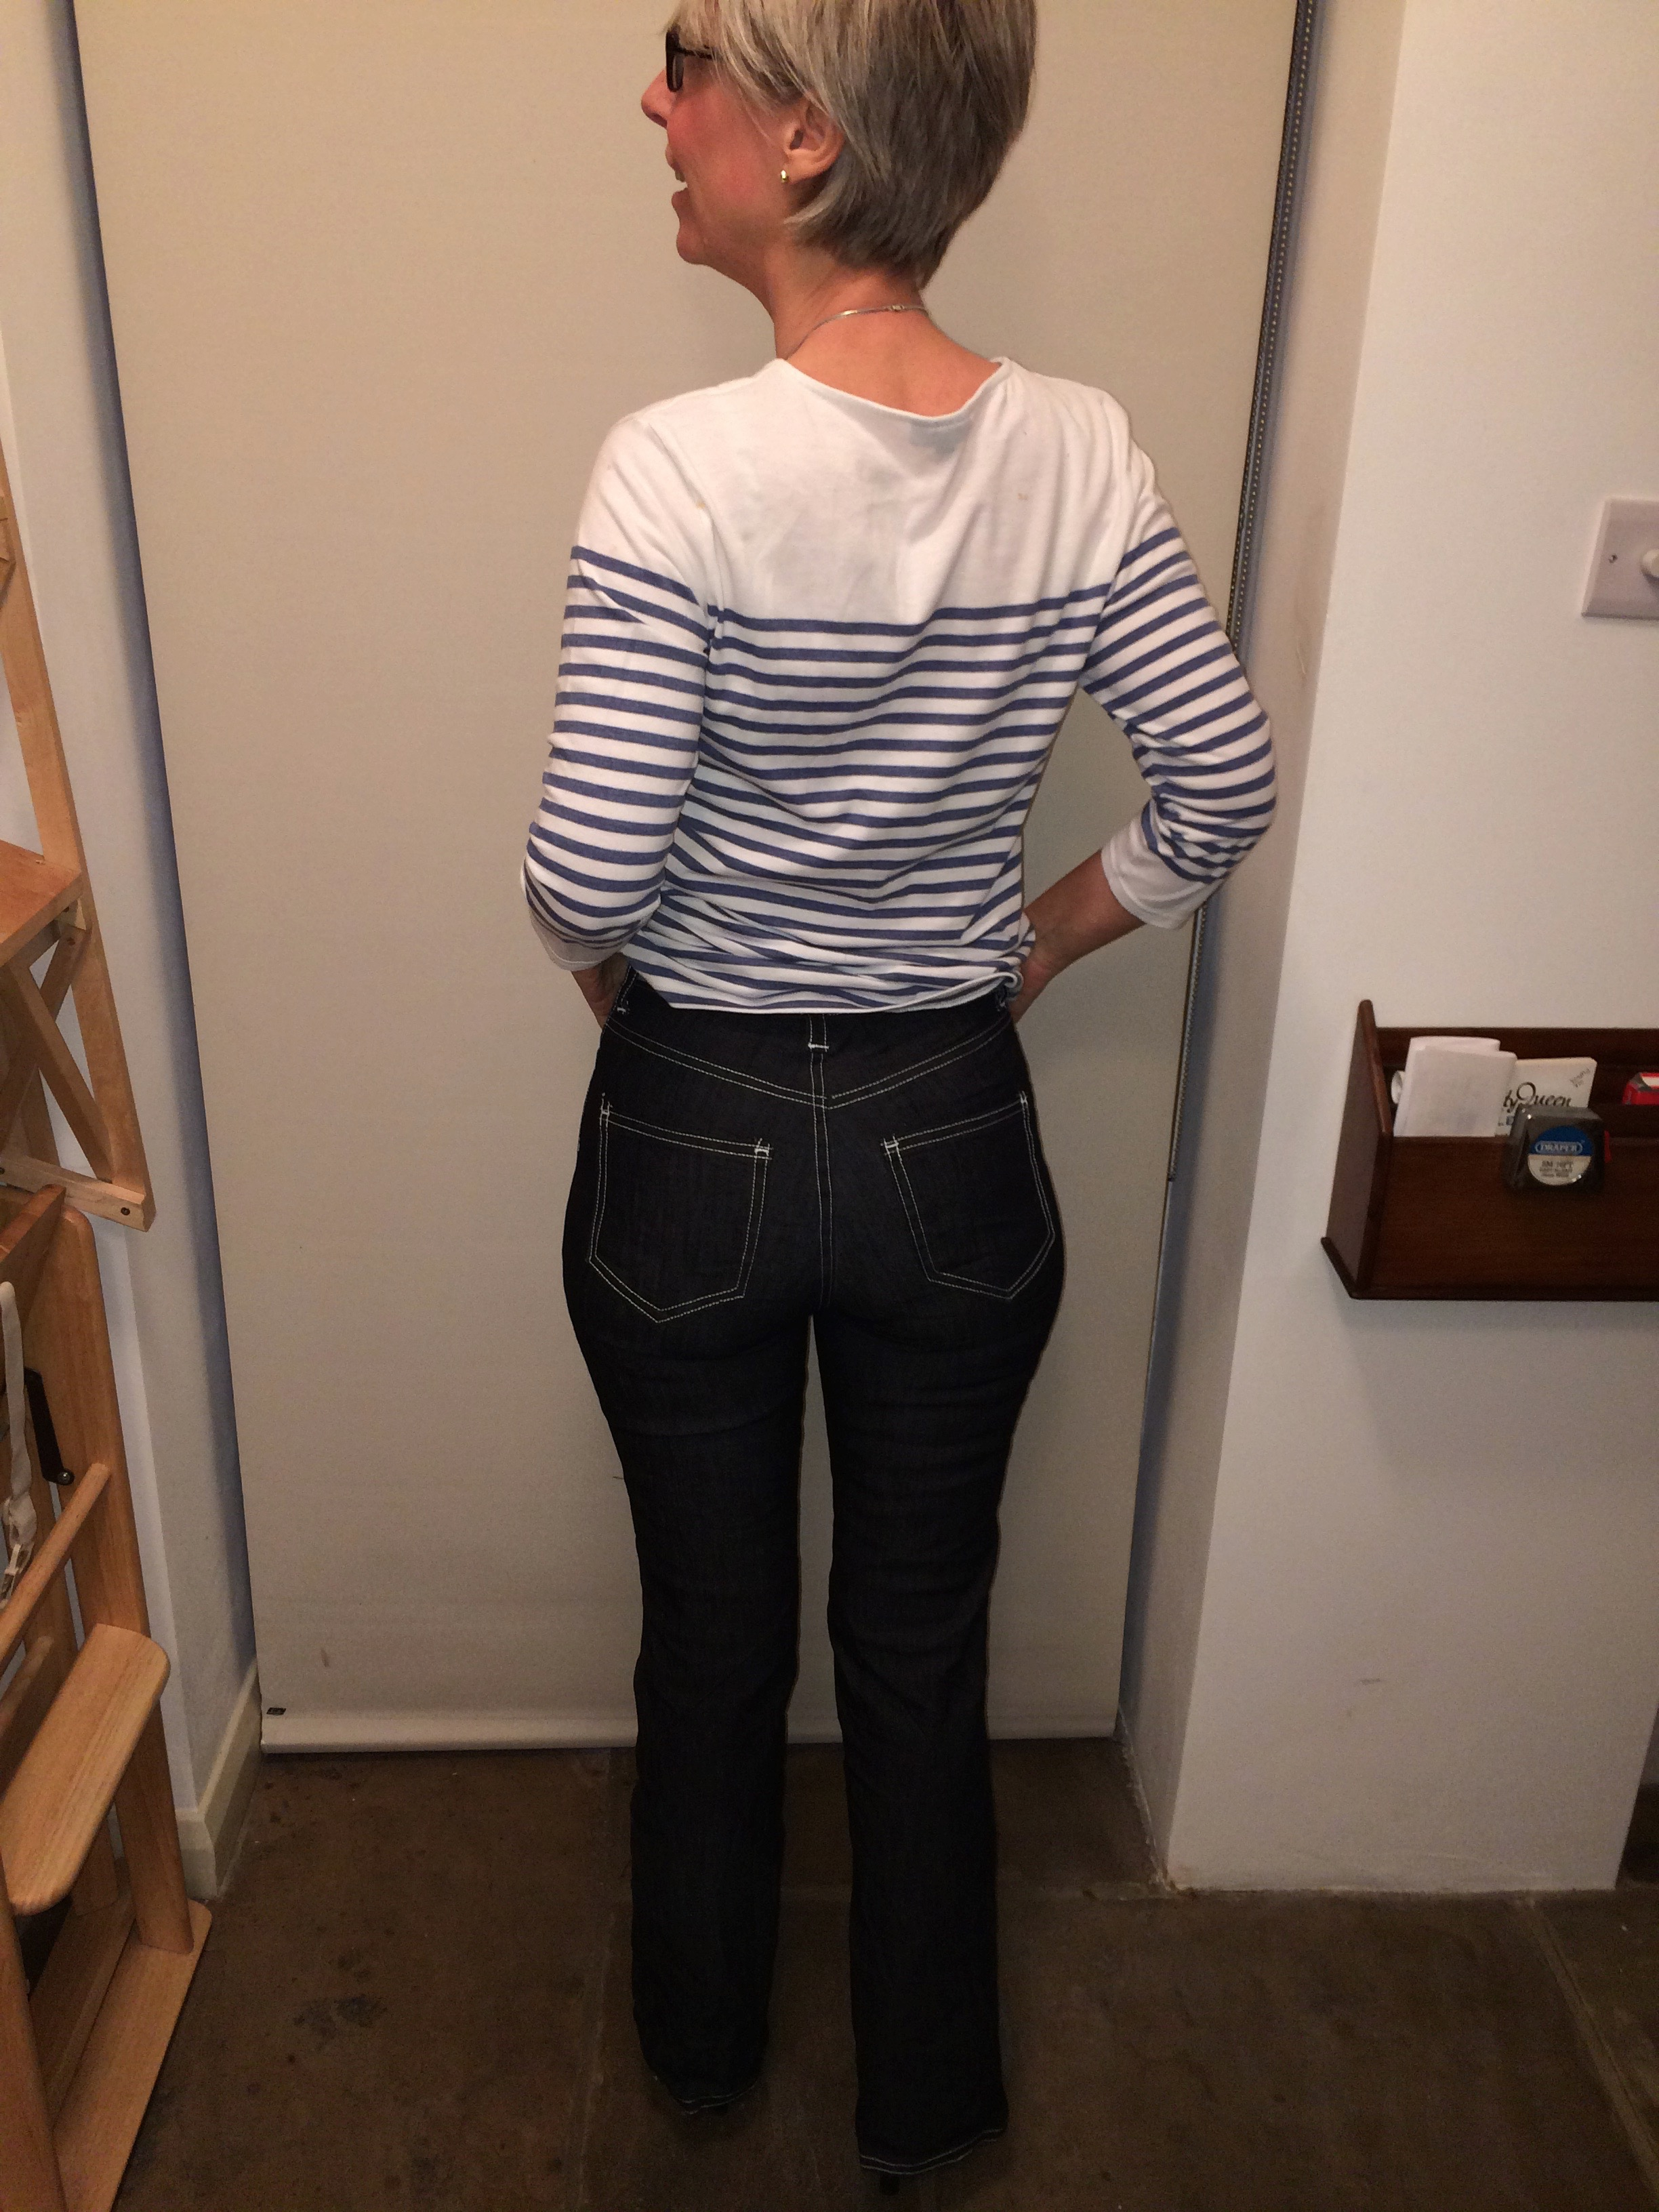 Birkinjeans back view